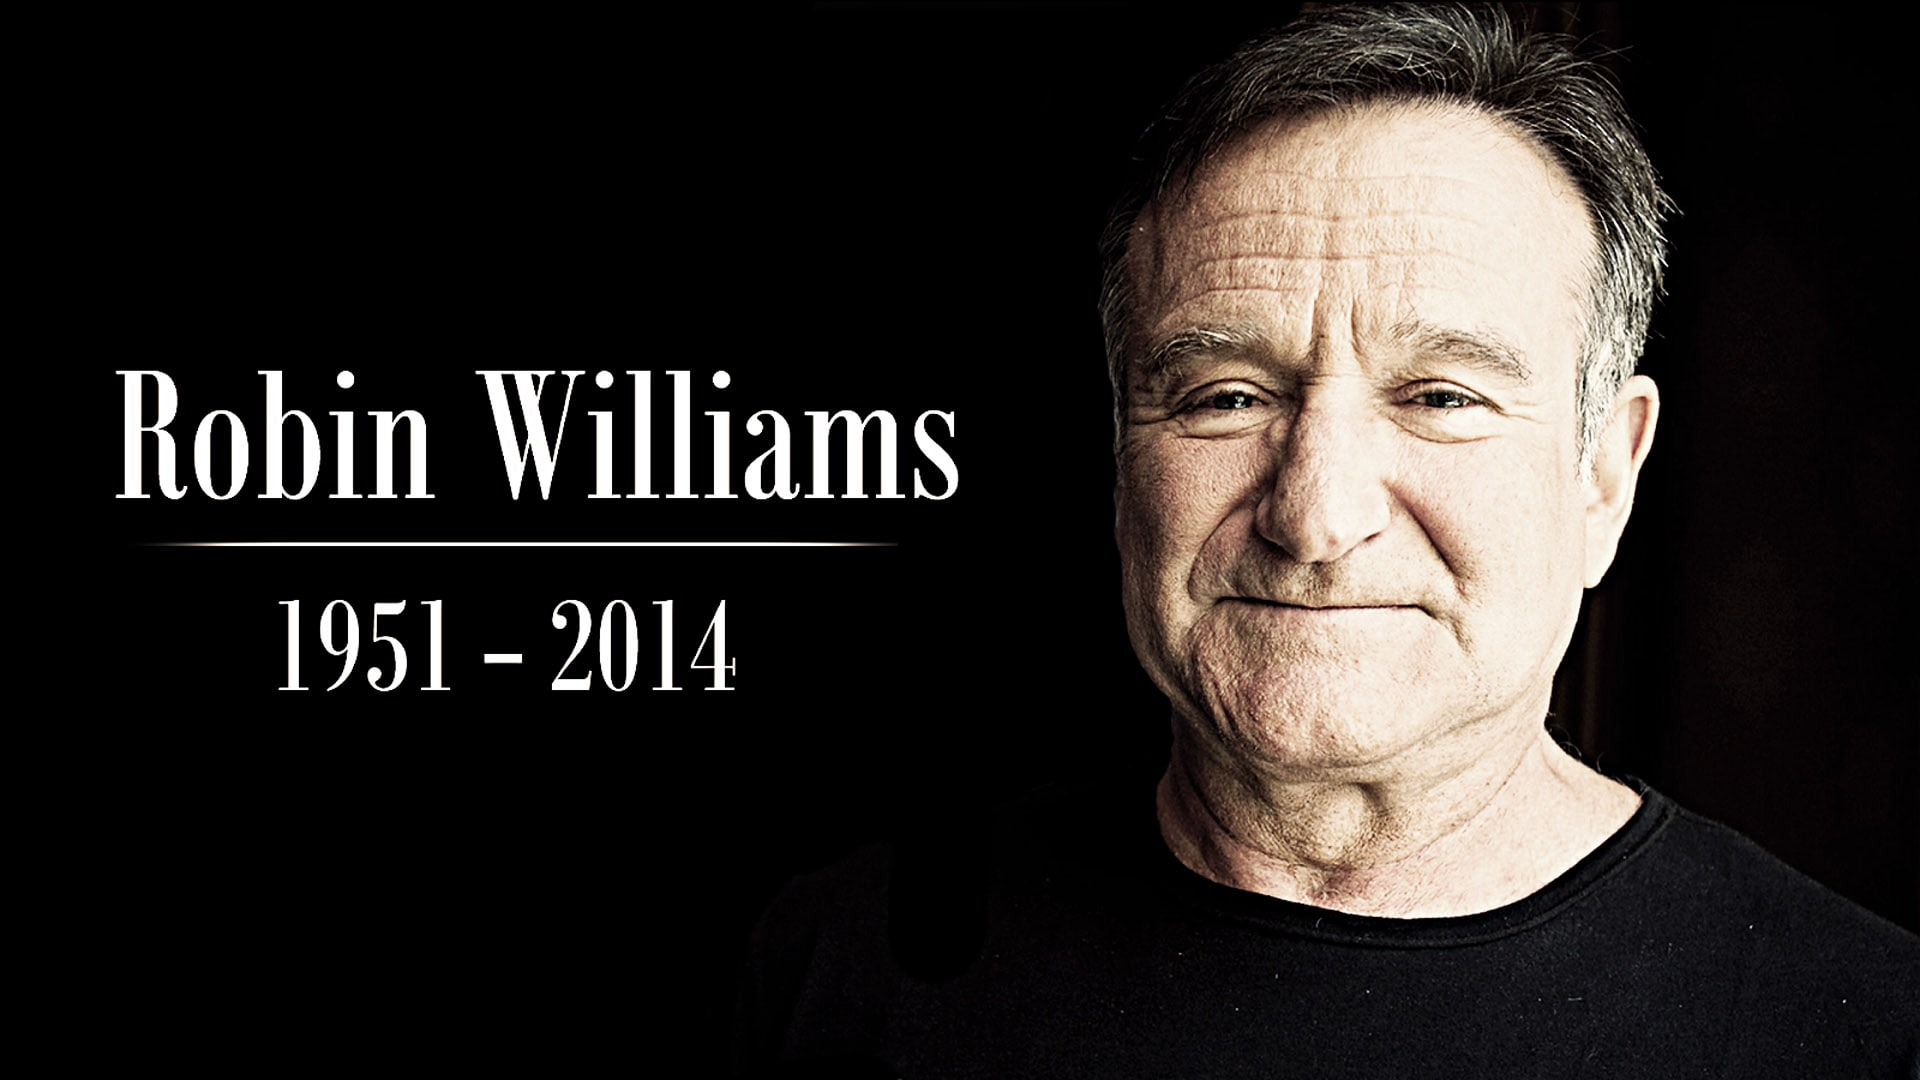 Robin Williams Backgrounds